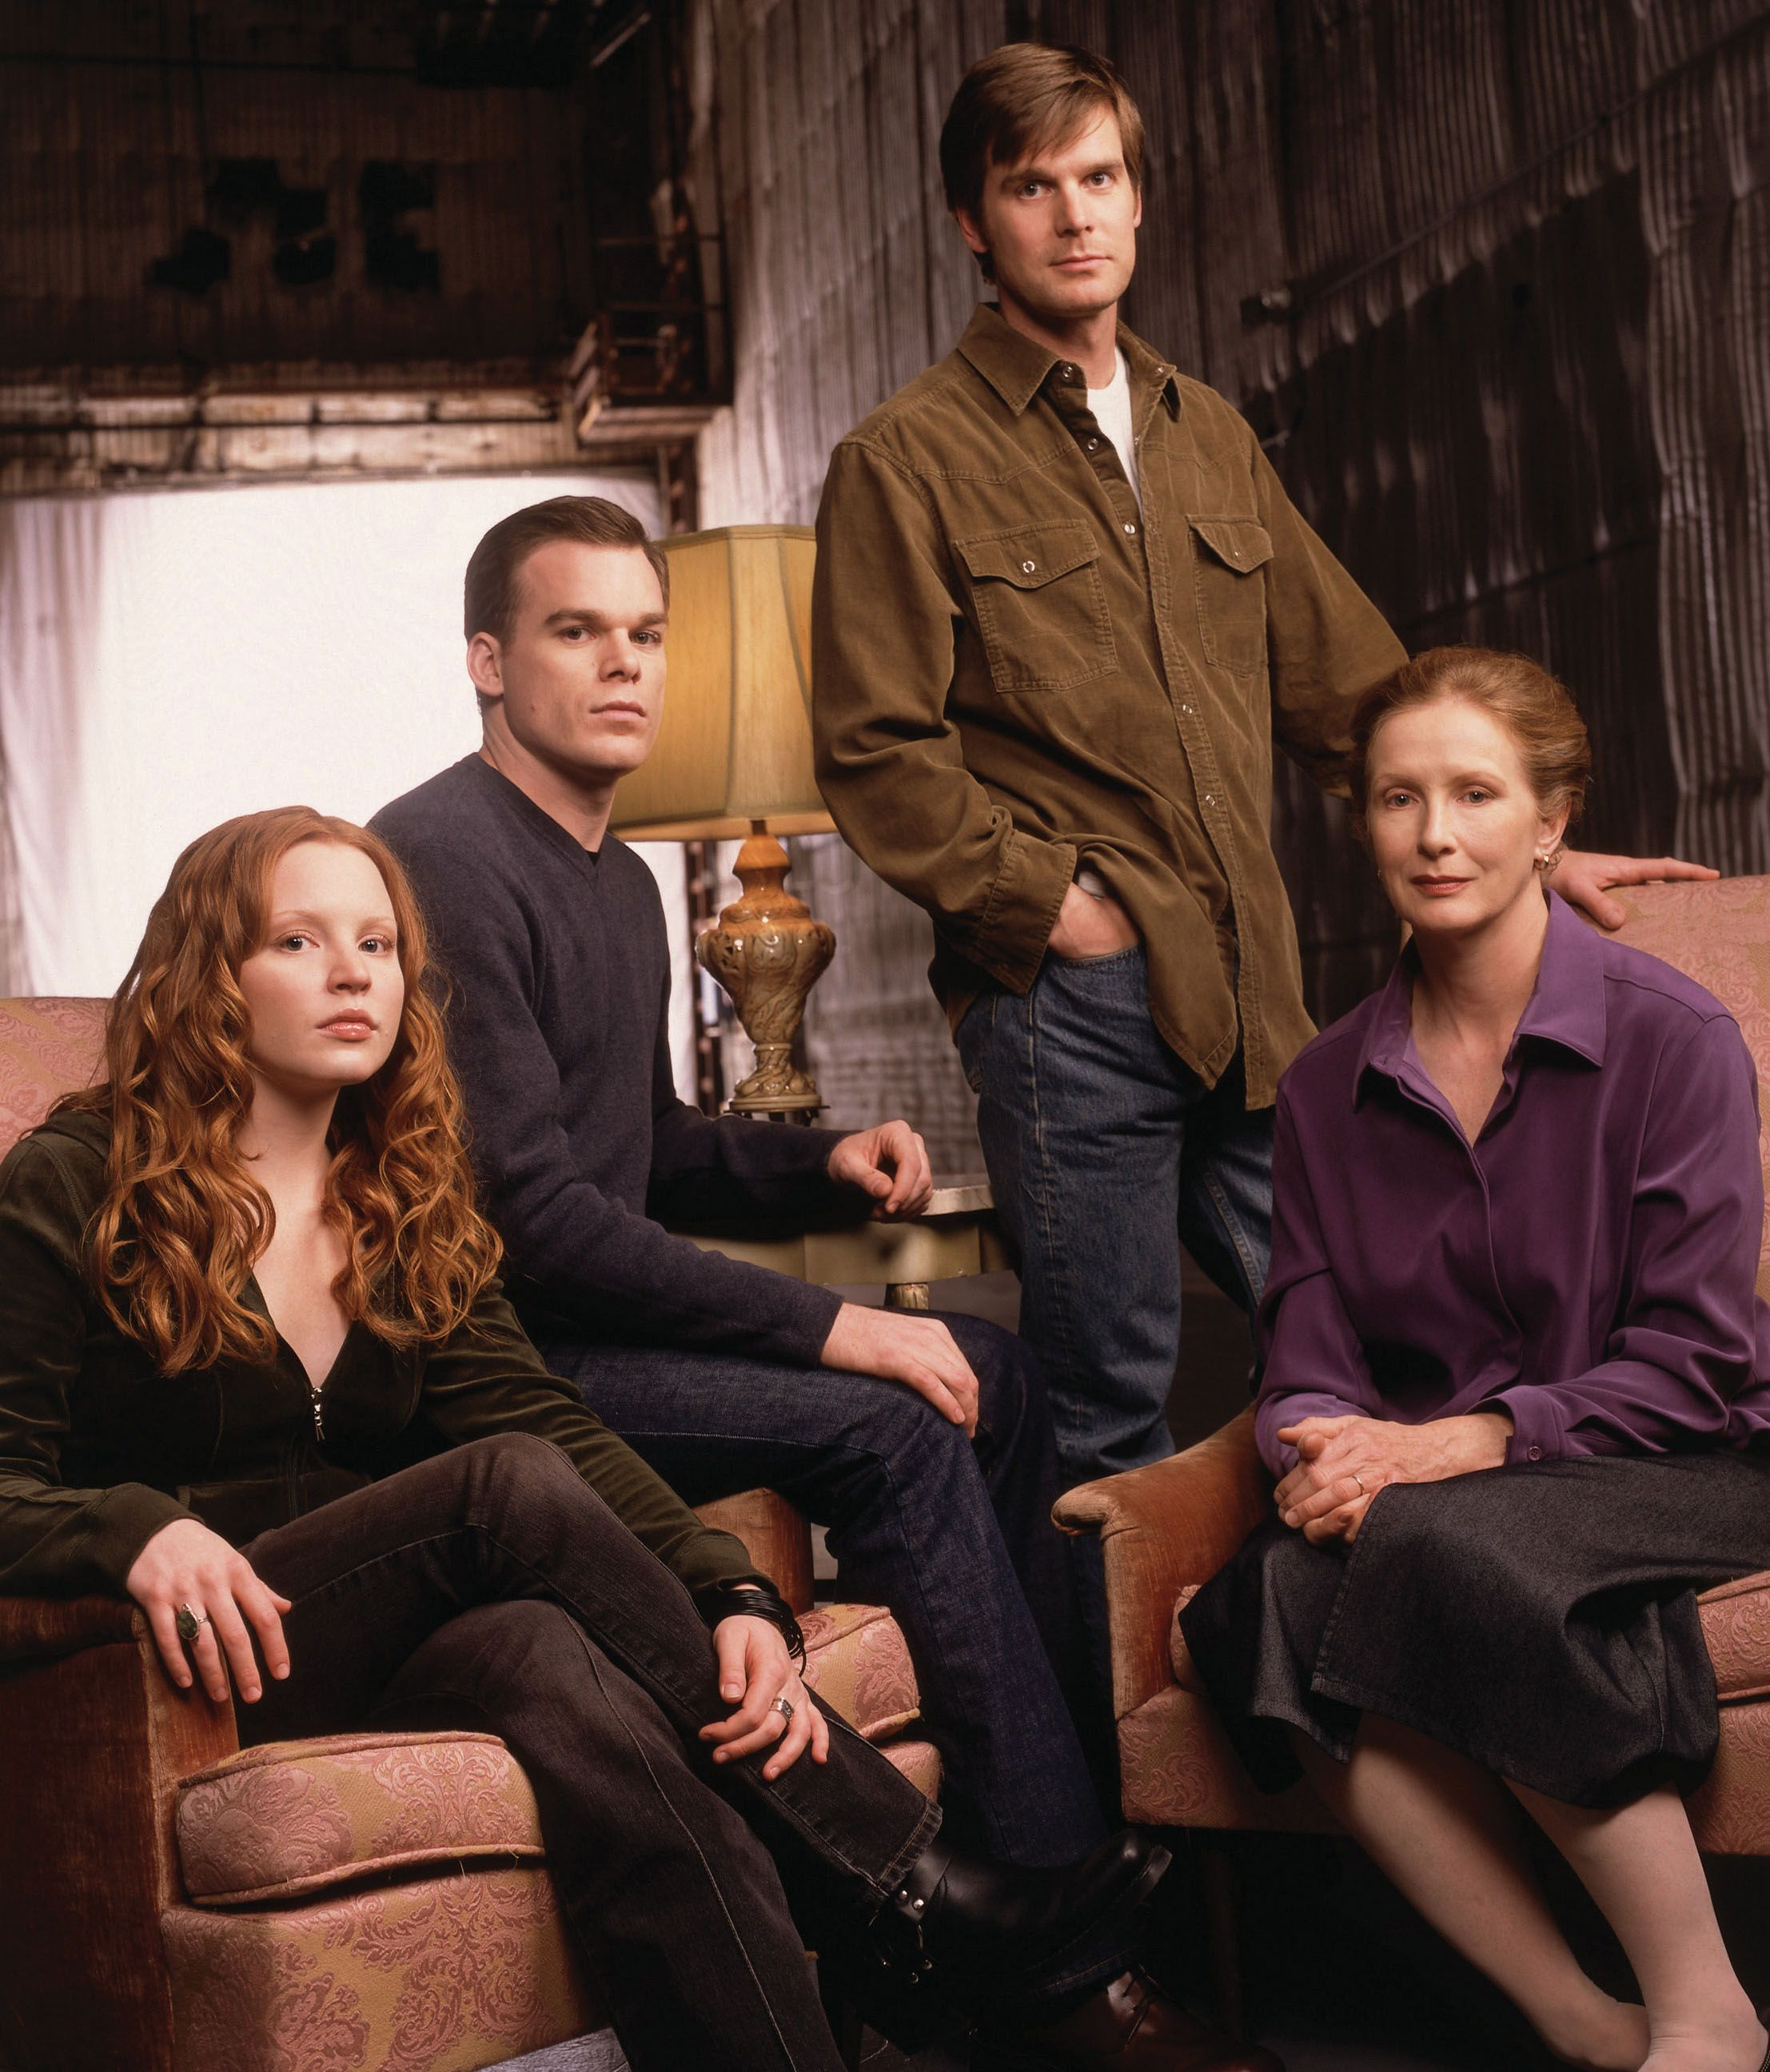 Six Feet Under 3 Season Cast